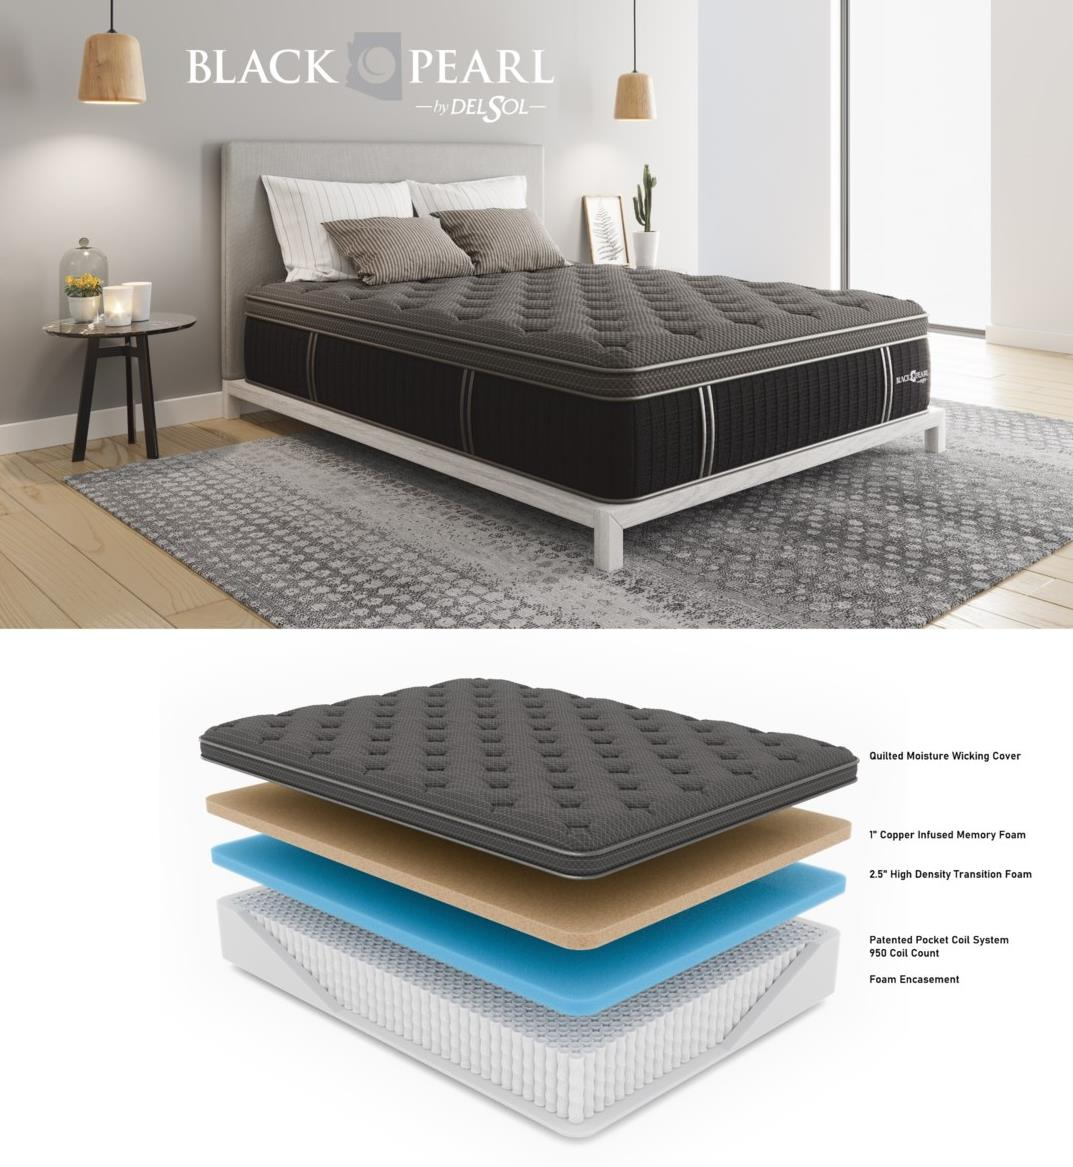 Black Pearl Mattress Collection